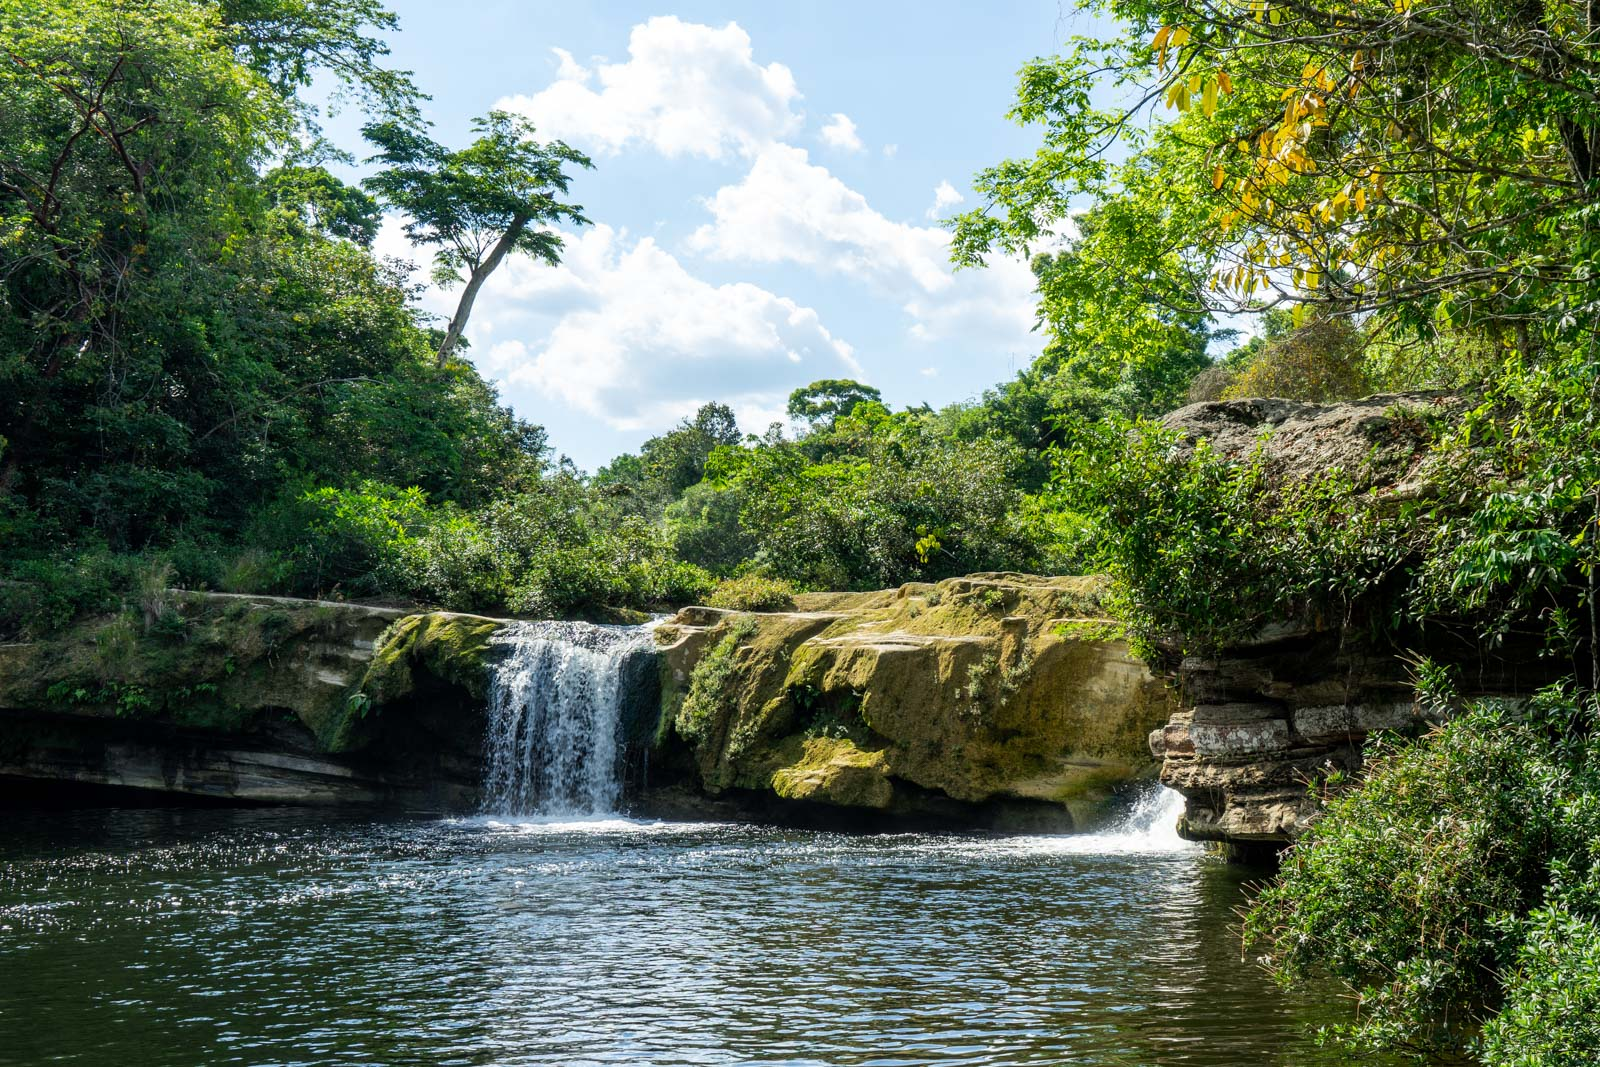 Rio Blanco National Park, Toledo, Belize